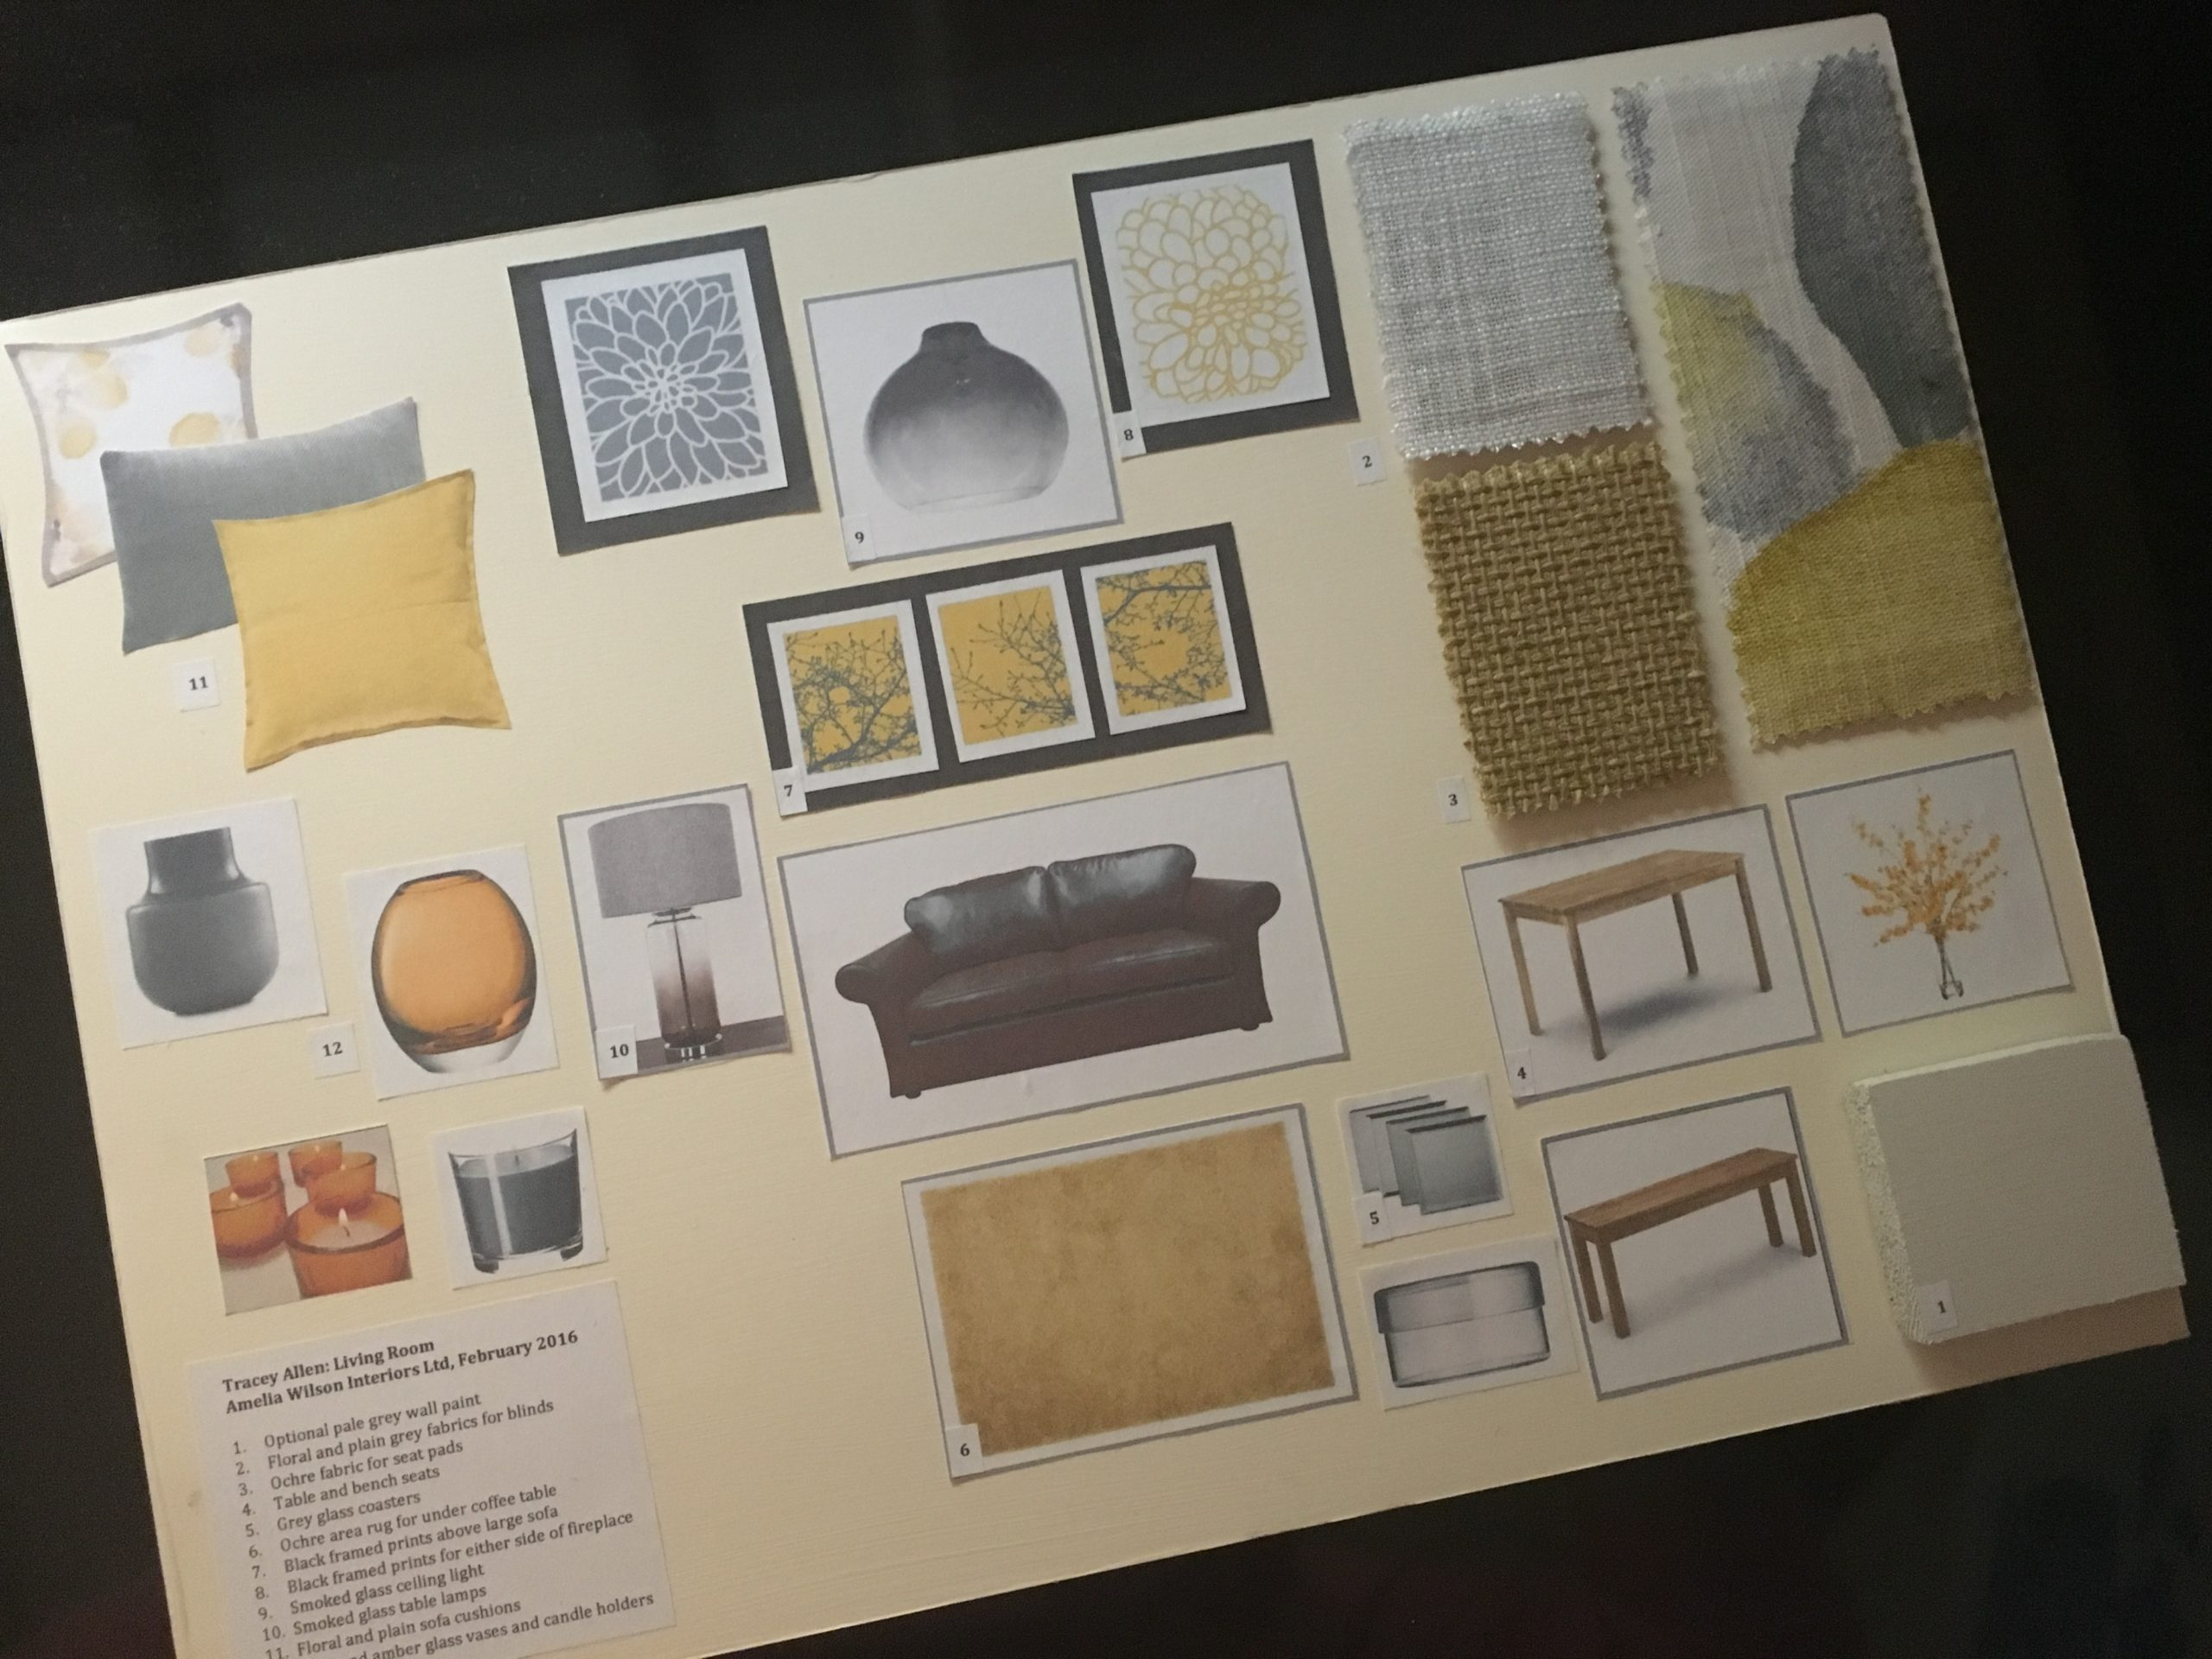 Mood board for living room refresh by Amelia Wilson Interiors Ltd